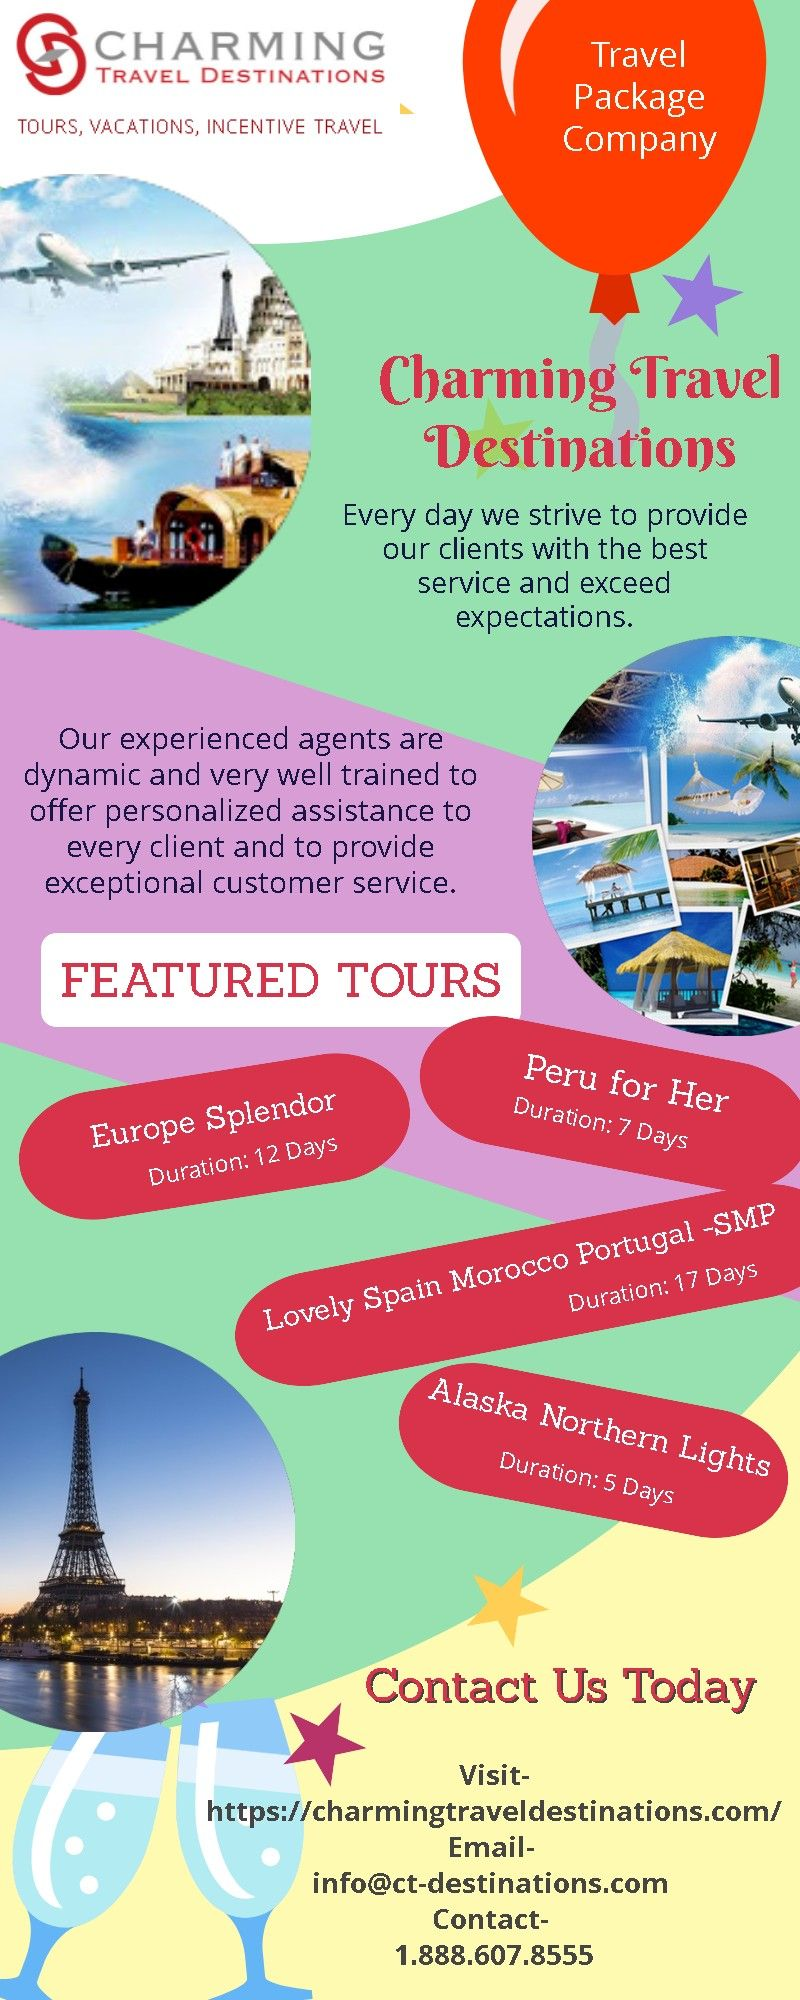 Charming Travel Destinations Is The Leading Travel Package Company